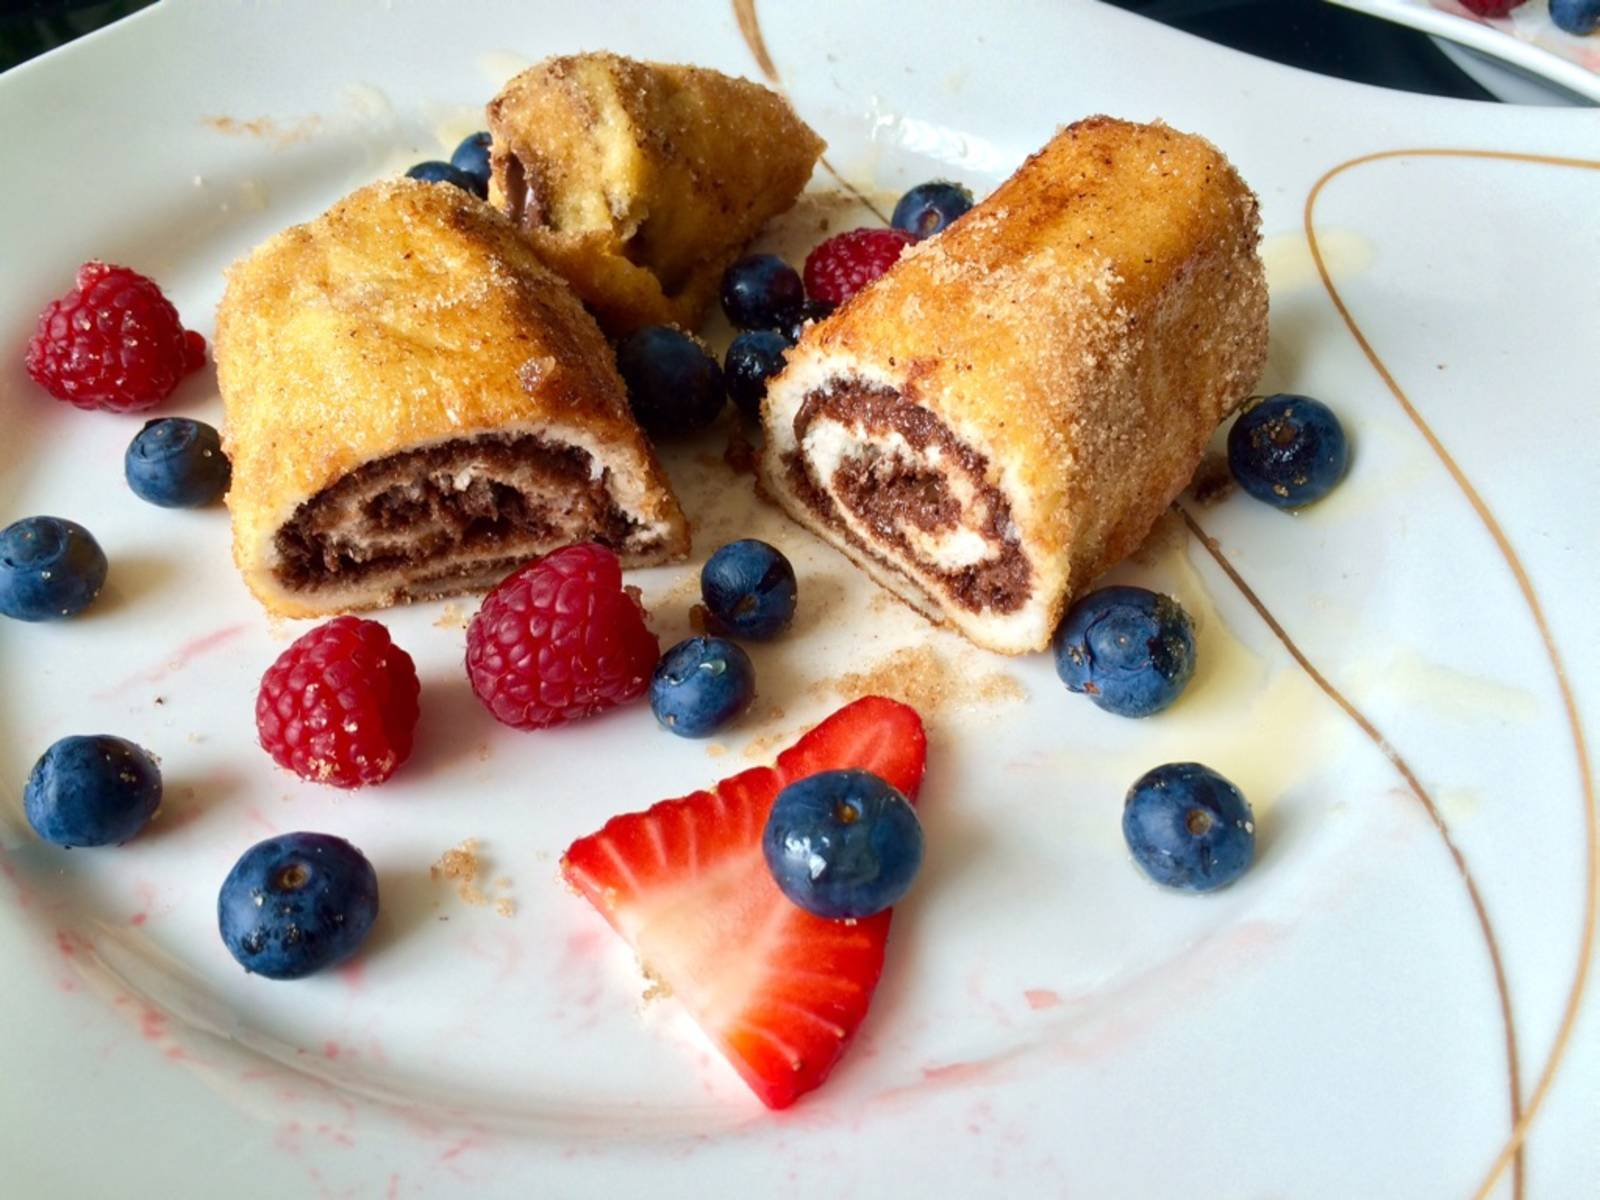 Serve with berries, honey and/or yogurt. For a better look, you can also halve the rolls.